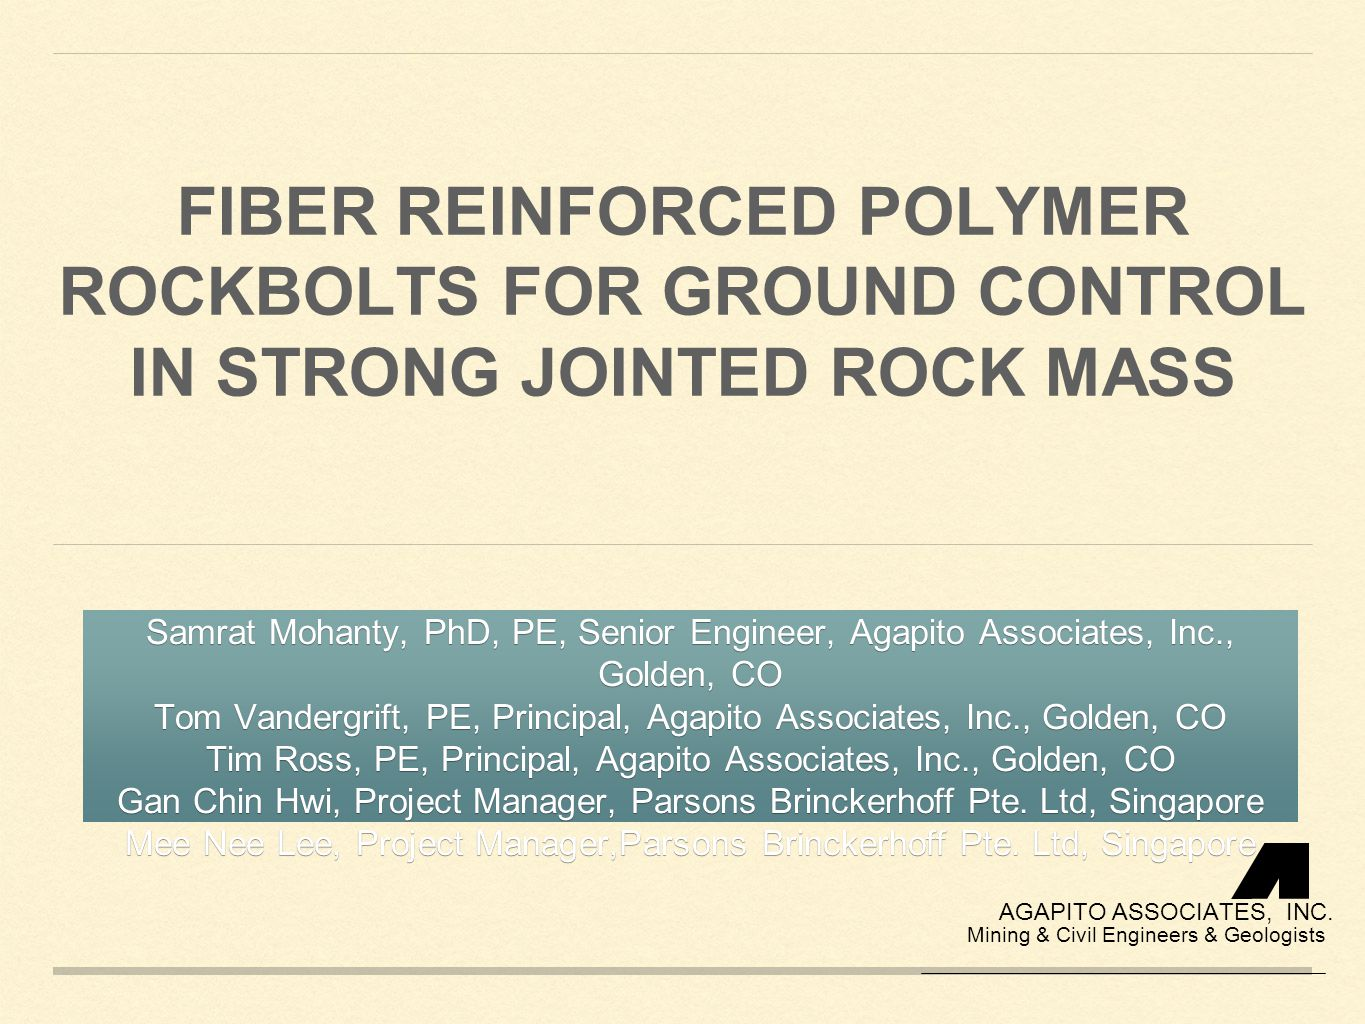 Fiber Reinforced Polymer RockBolts for Ground Control in Strong Jointed Rock Mass